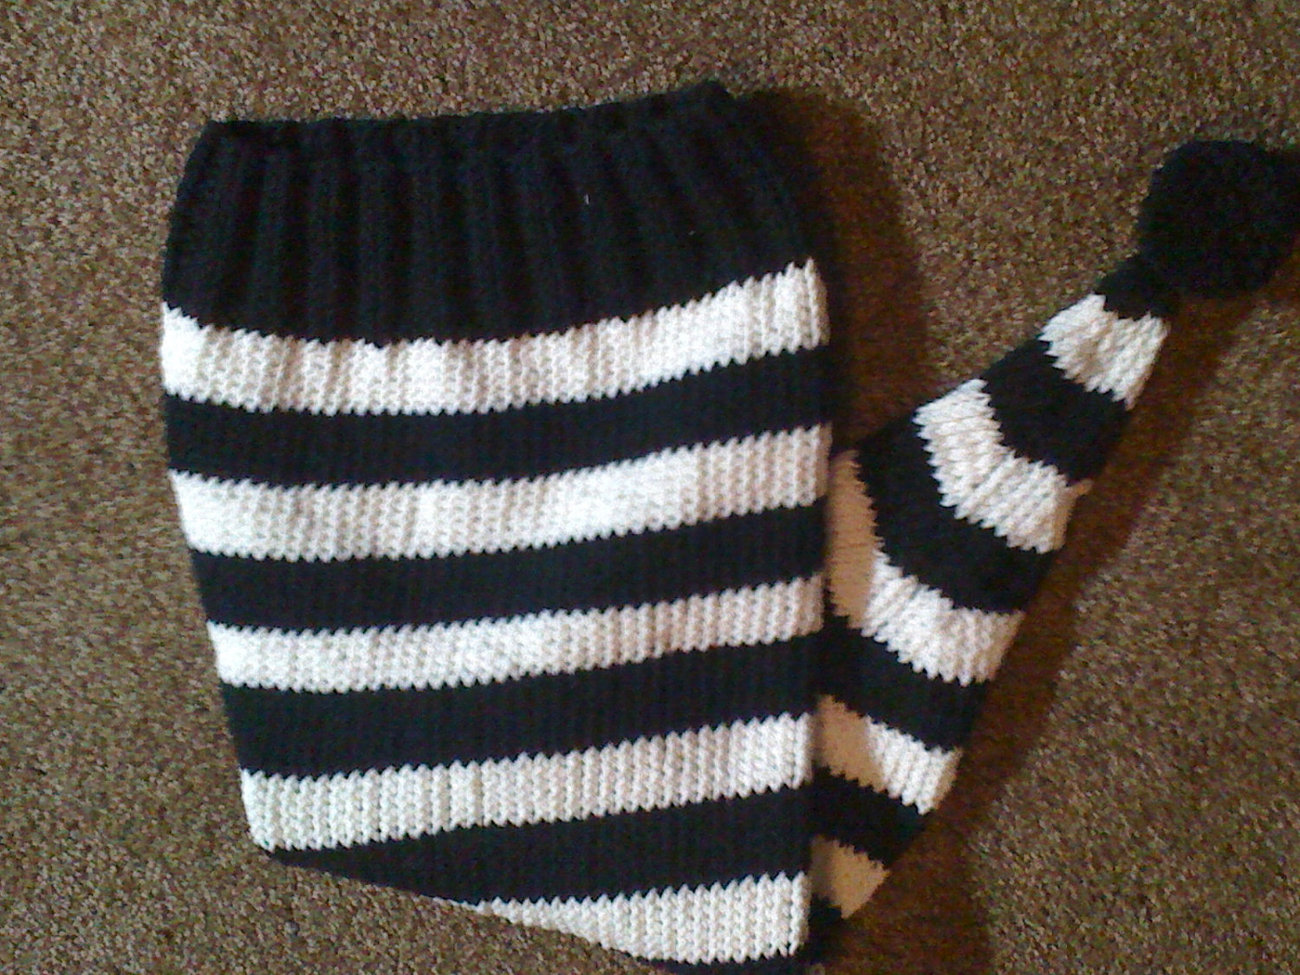 (20)knit striped elf pixie hat  black and white or your choice of colors with po